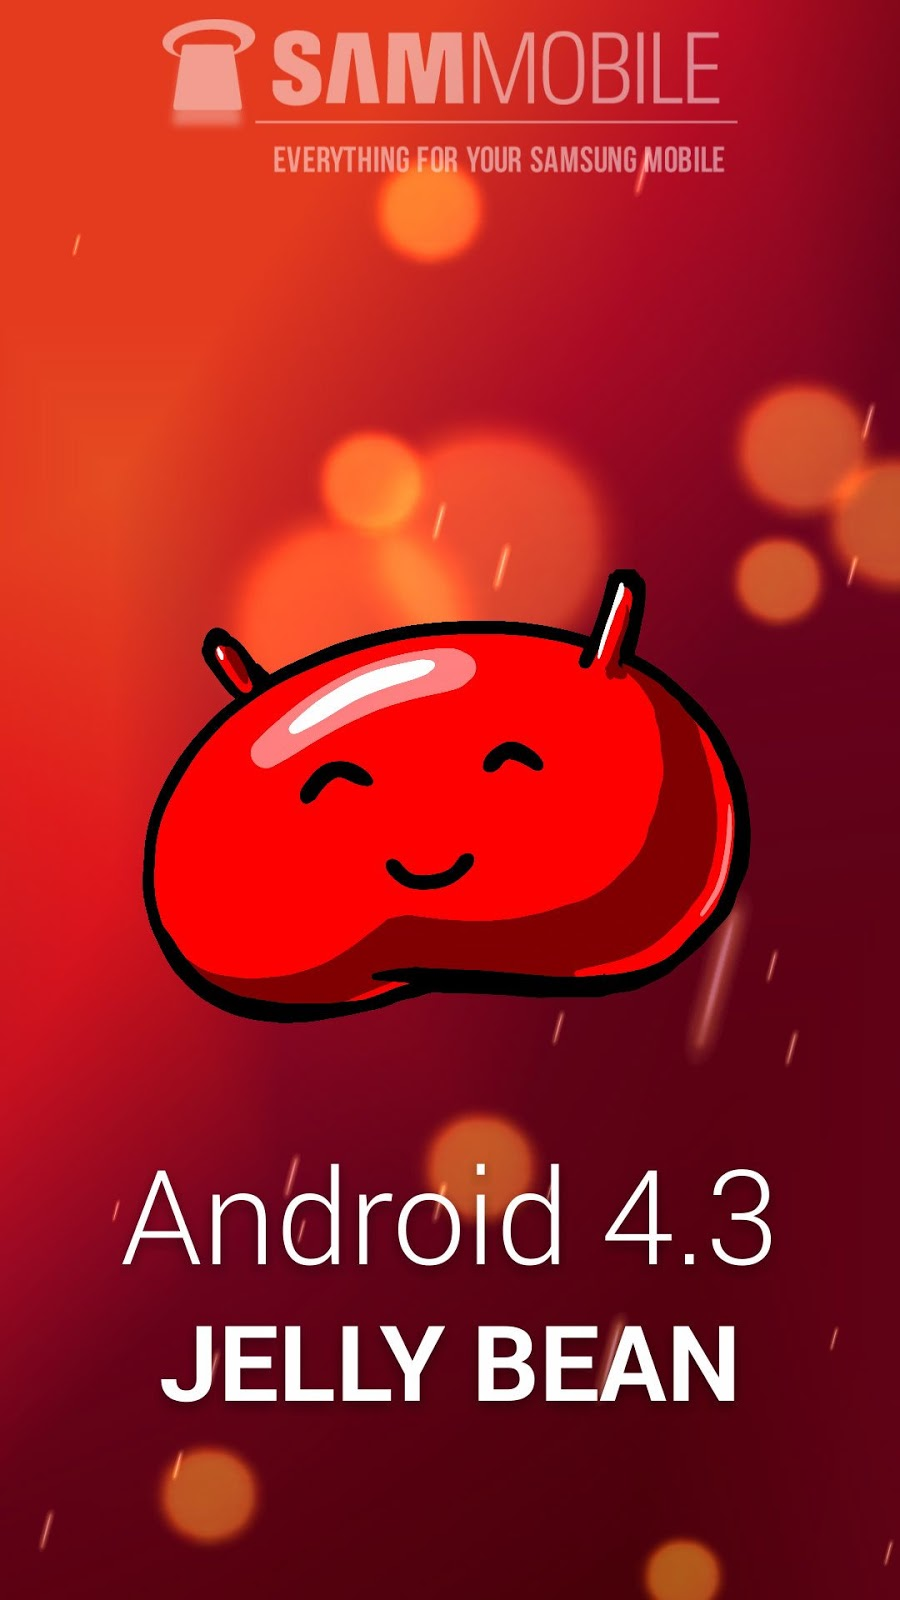 ANDROID 4.3 OS | FREE DOWNLOAD AND INSTALL